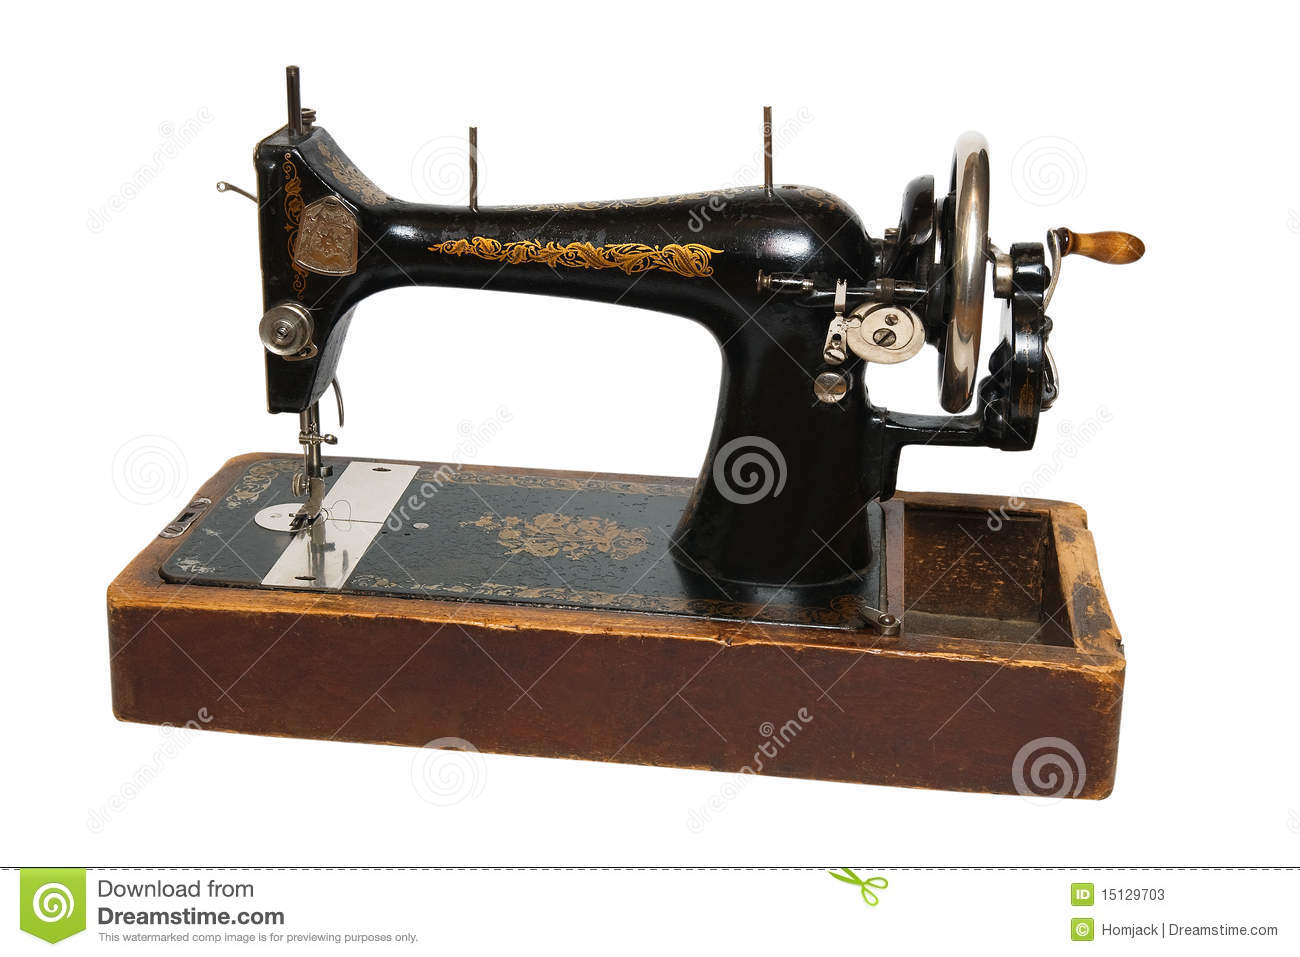 old sewing machine stock photos image 15129703. Black Bedroom Furniture Sets. Home Design Ideas